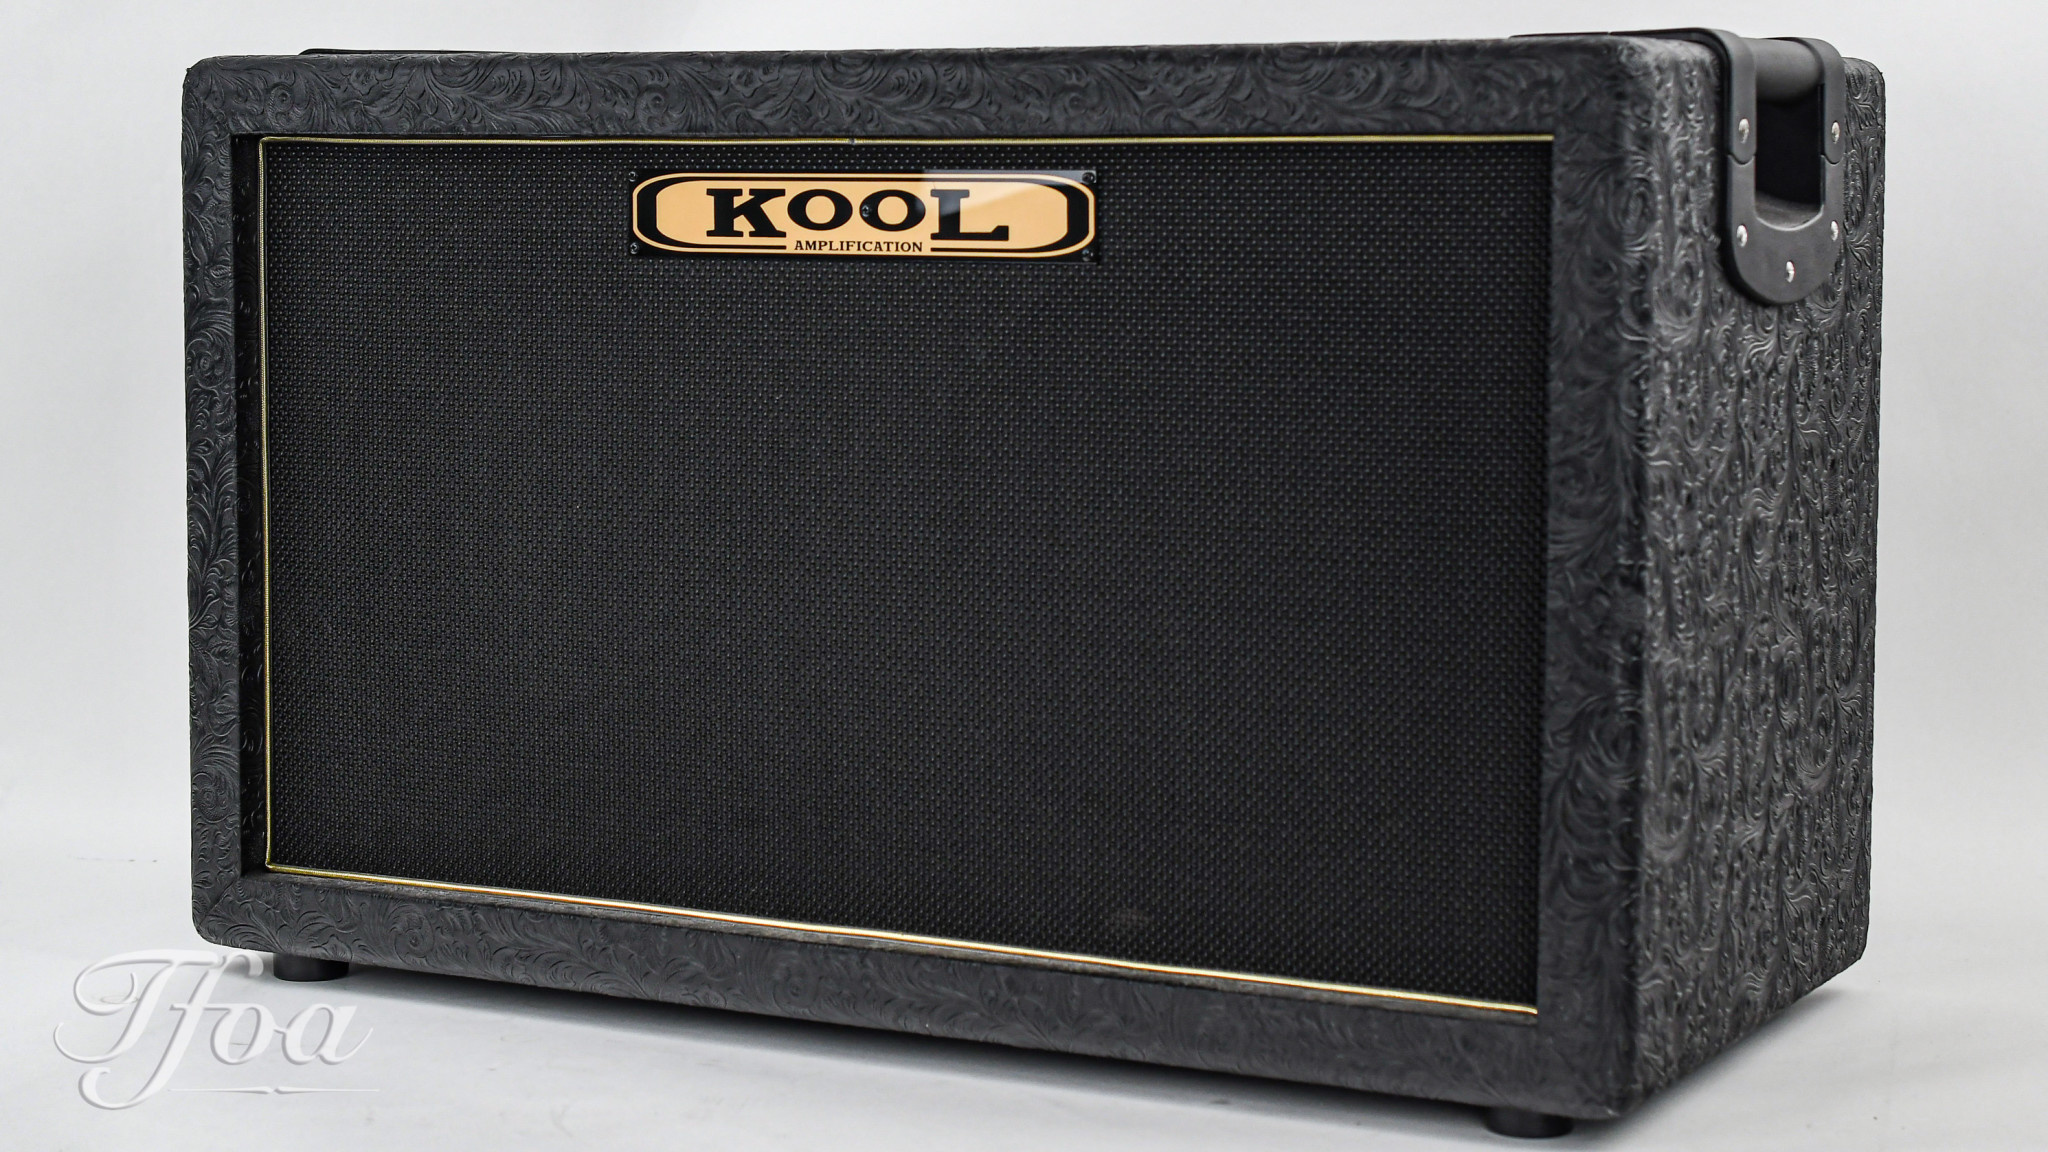 Kool Amplification 2x12 Cabinet